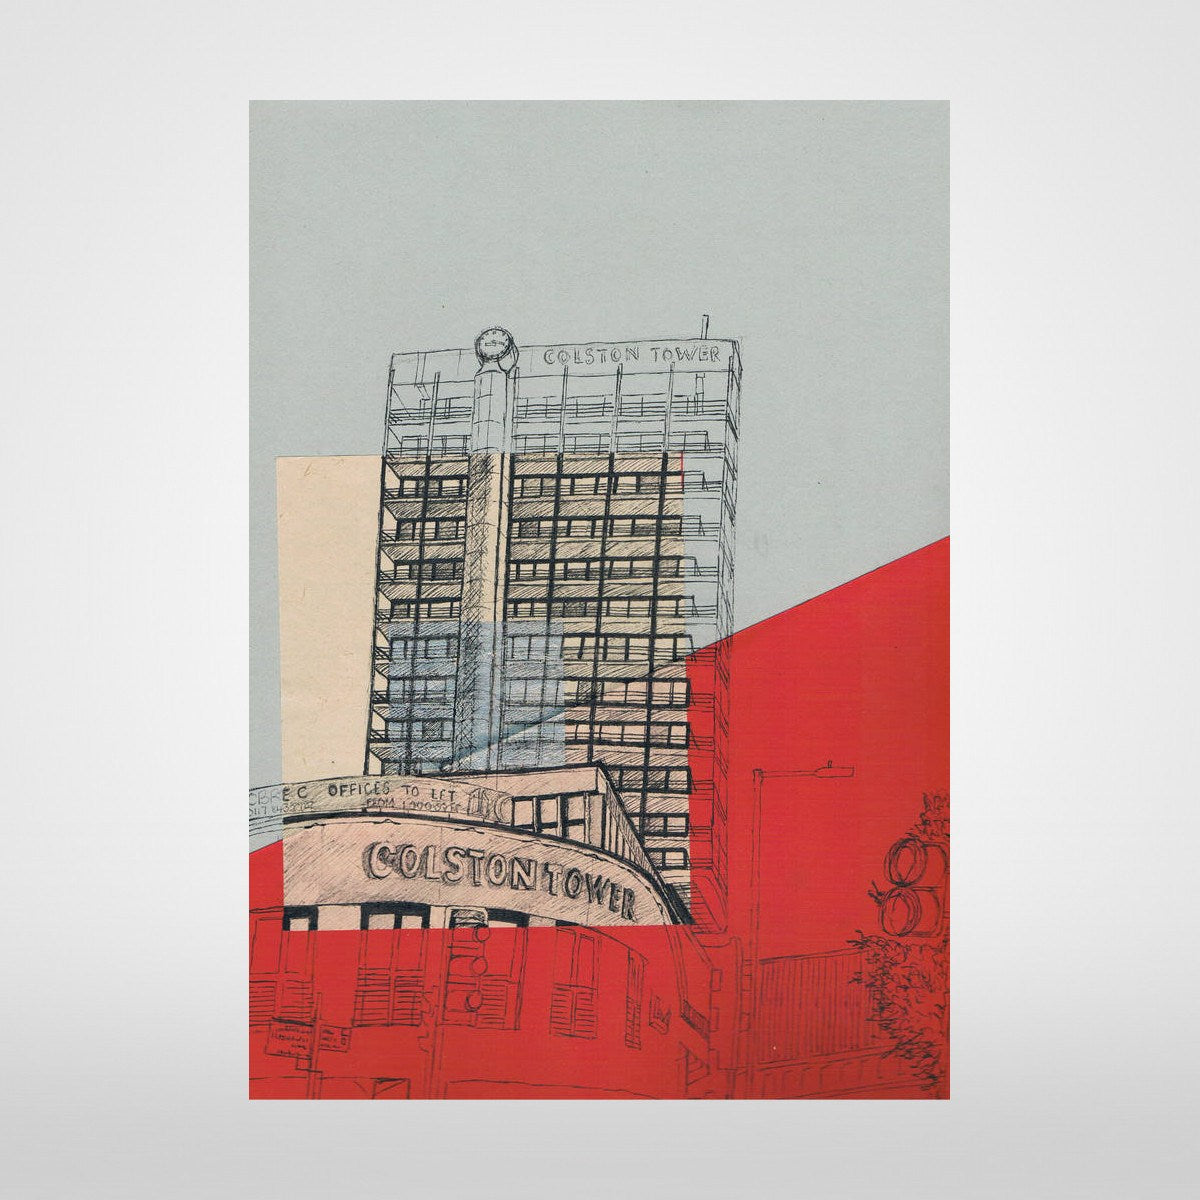 Colston Tower on Grey/Red Print by Lisa Malyon at The Bristol Shop